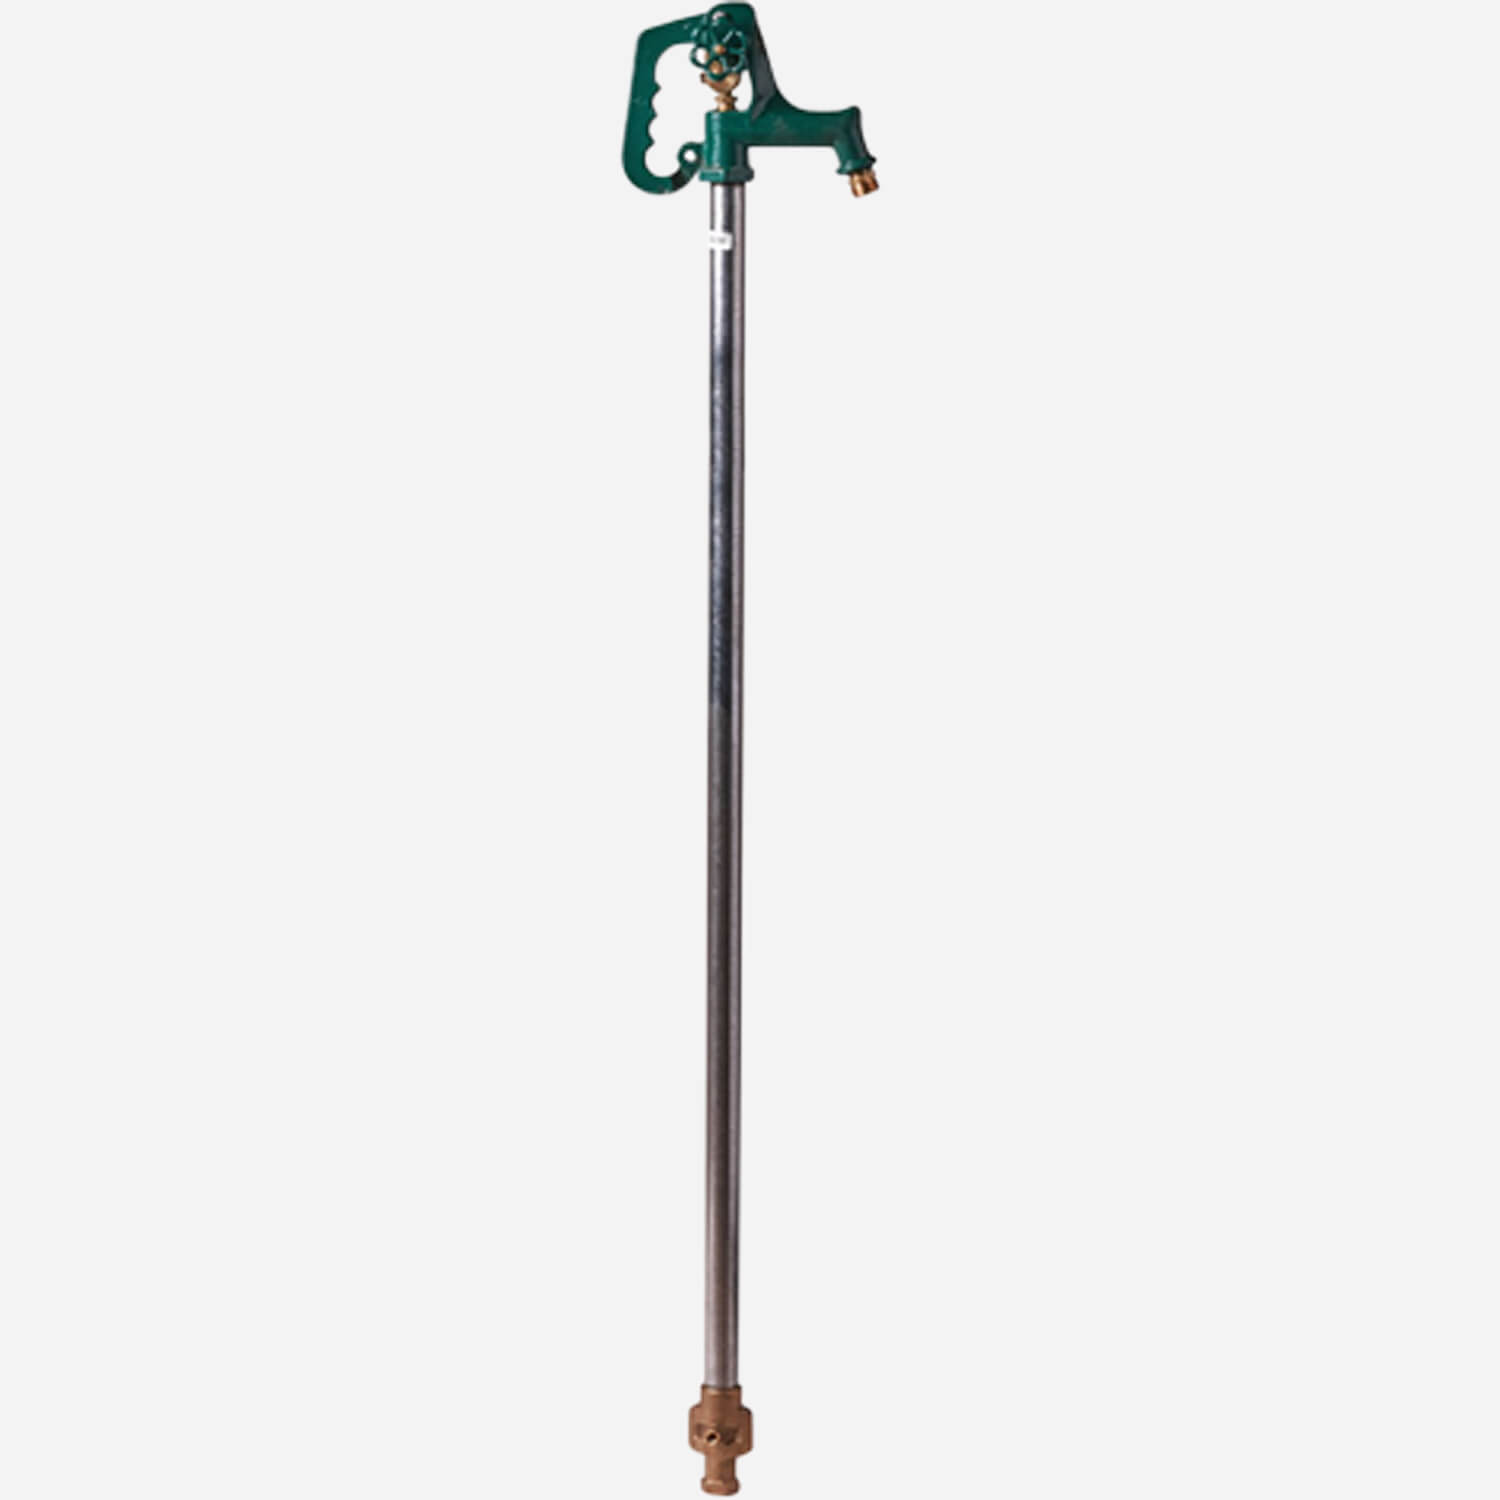 Roof Hydrant Amp Non Freeze Post Hydrants With 3 4 Inlet And